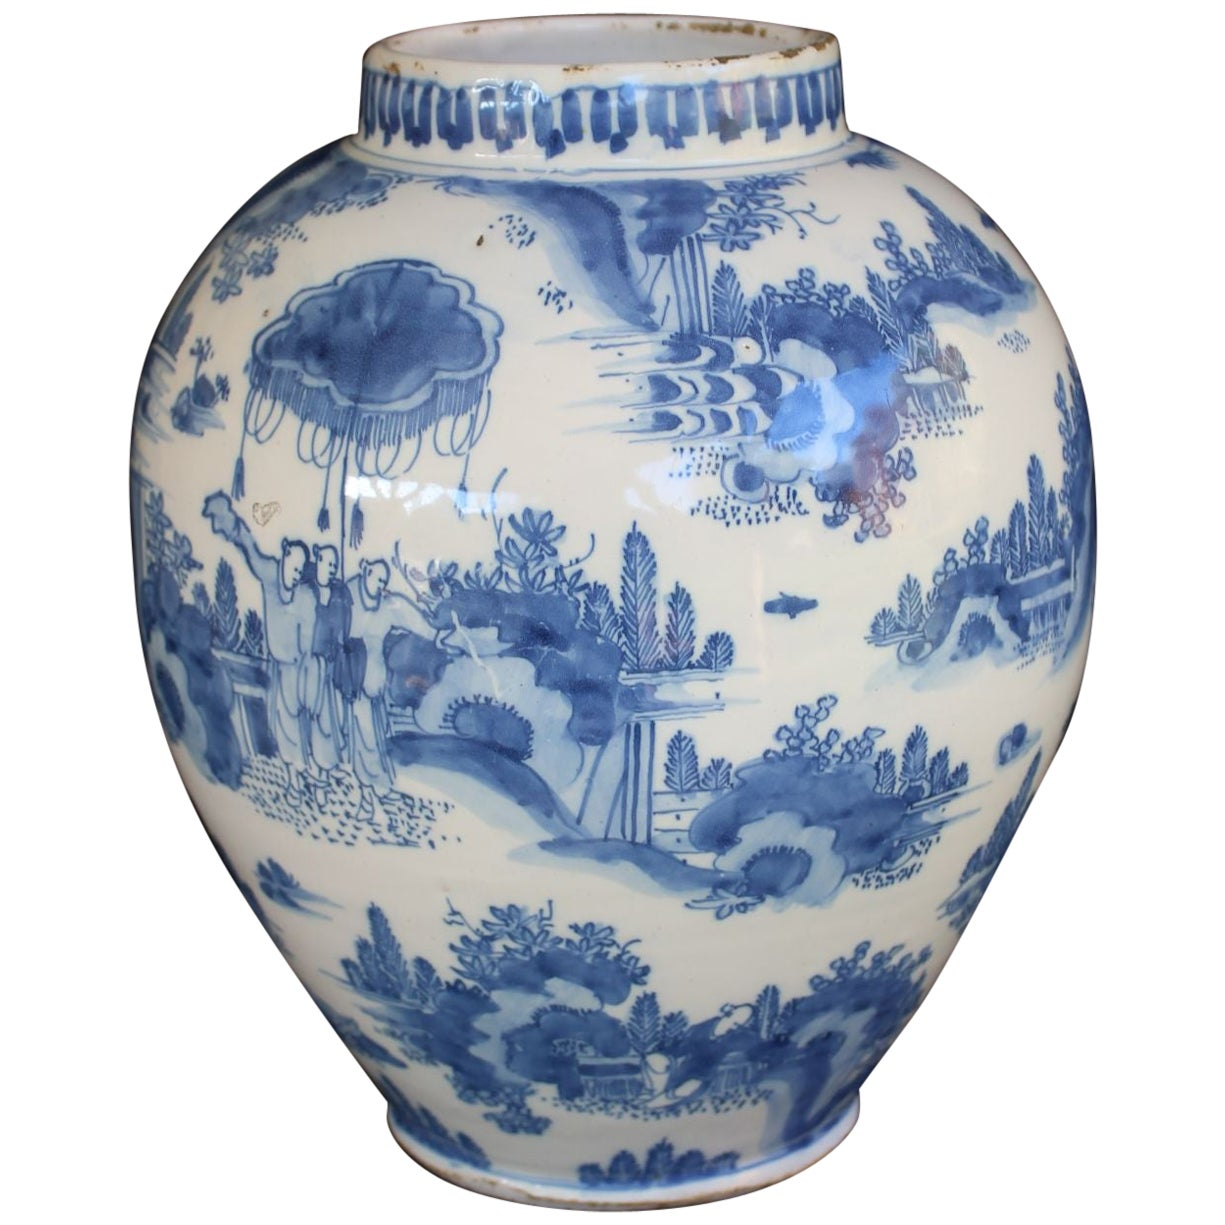 Delft, Blue and White Chinoiserie Landscape Jar, 1660-1680